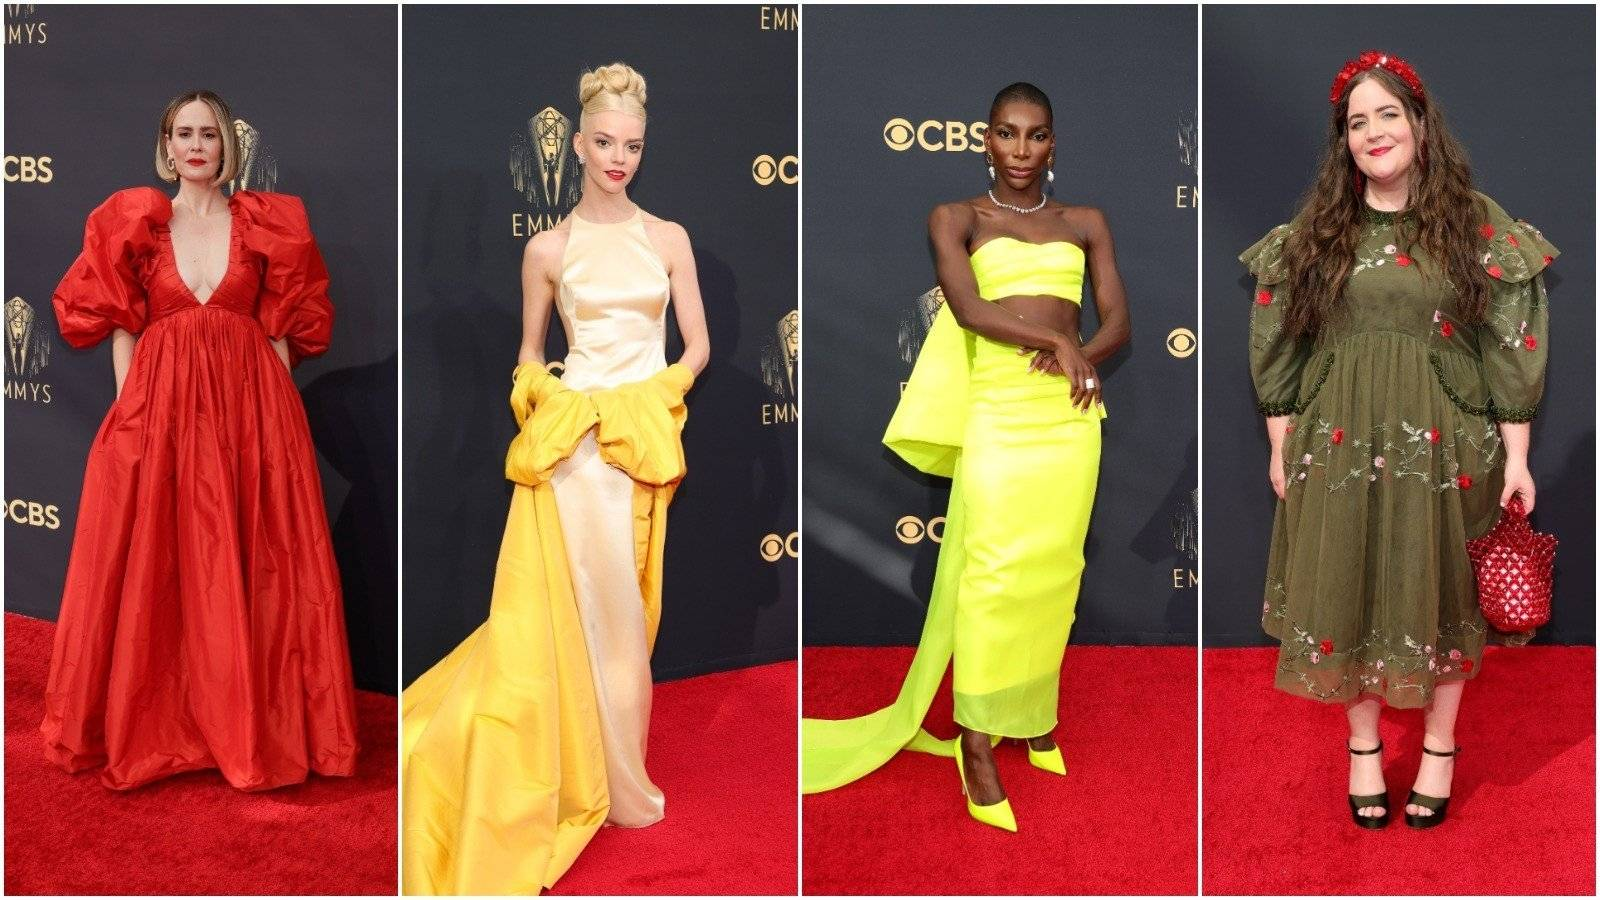 Ensemble's best dressed at the Emmy Awards